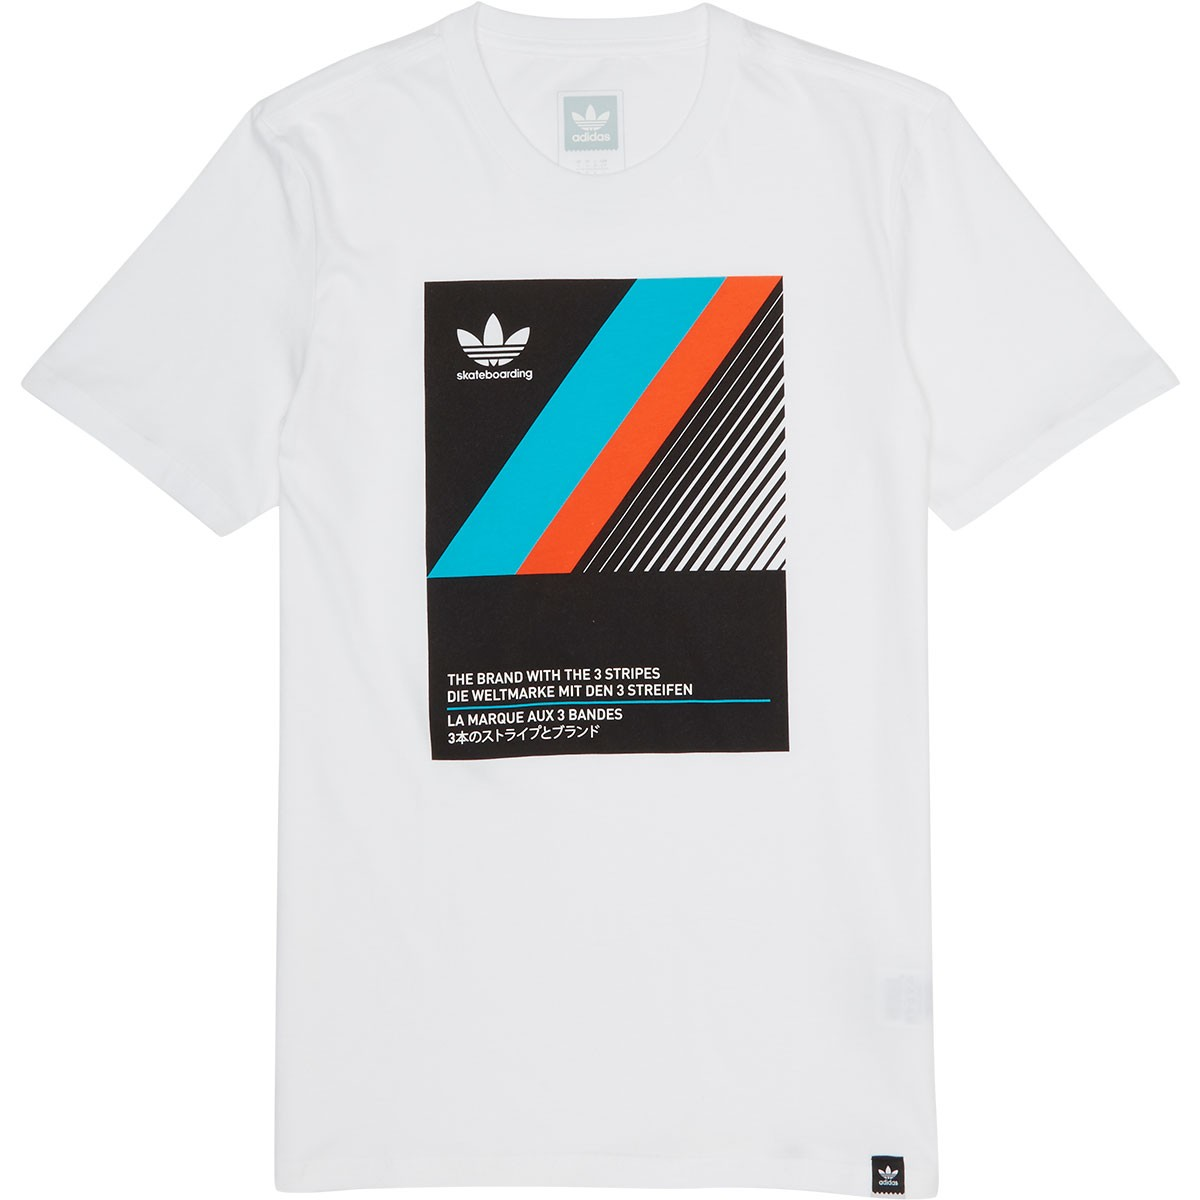 30c3b275 Adidas VHS Block T-Shirt - White/Black/Energy Blue